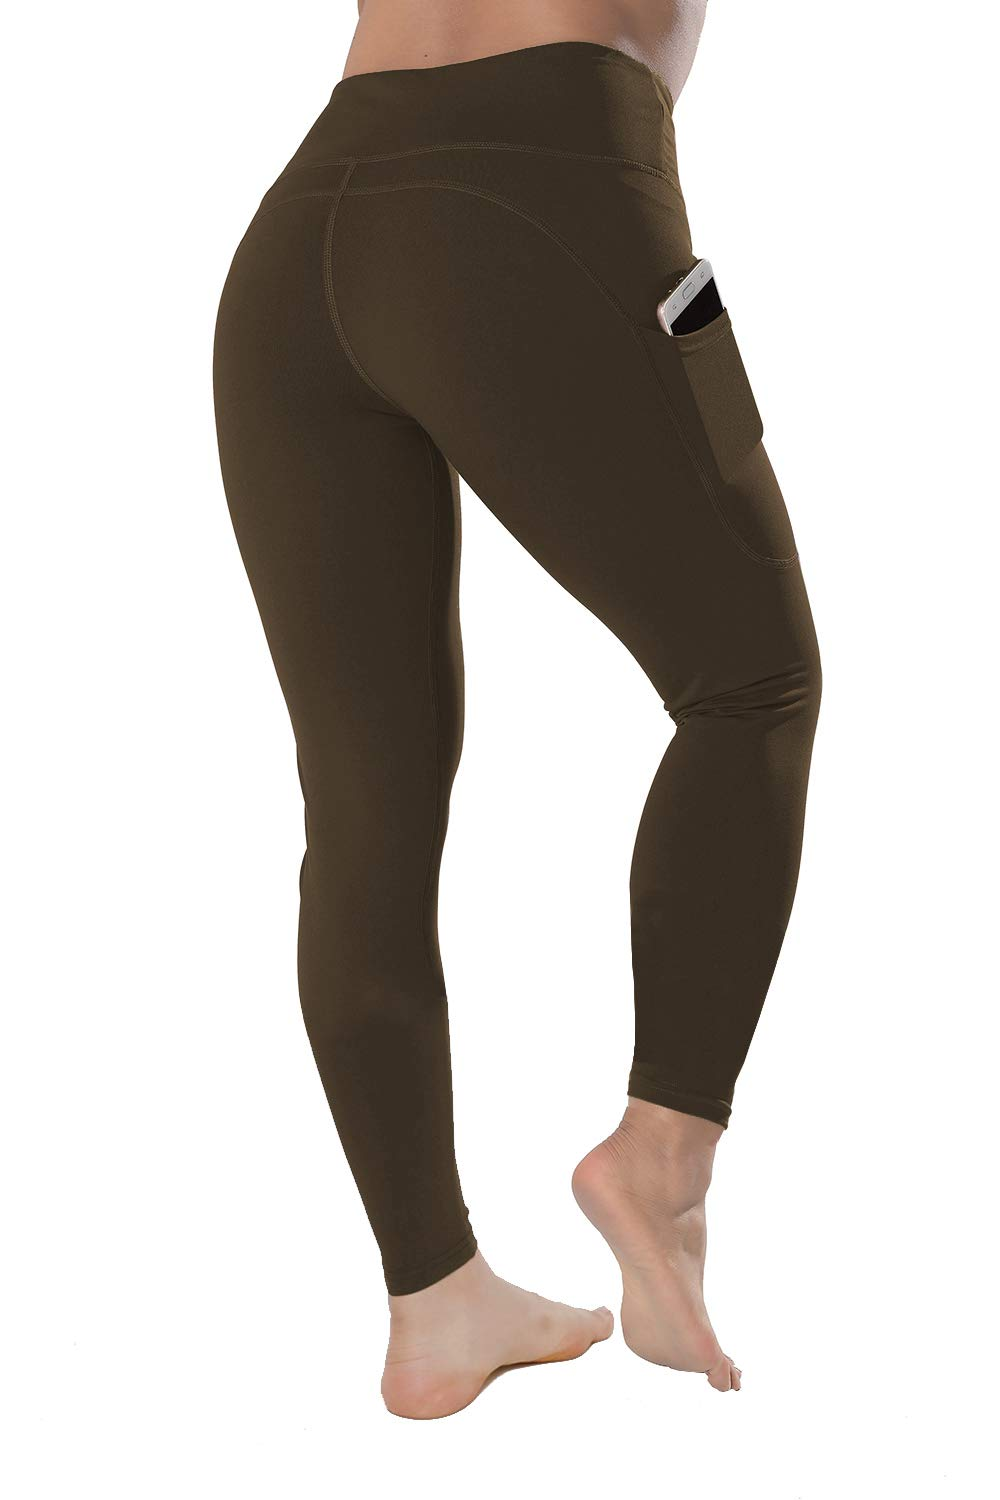 QYQ High Waisted Leggings with Pockets - Workout Leggings for Women Stretch Power Flex Yoga Pants - Full&Capri (Small, Coffe) by QYQ